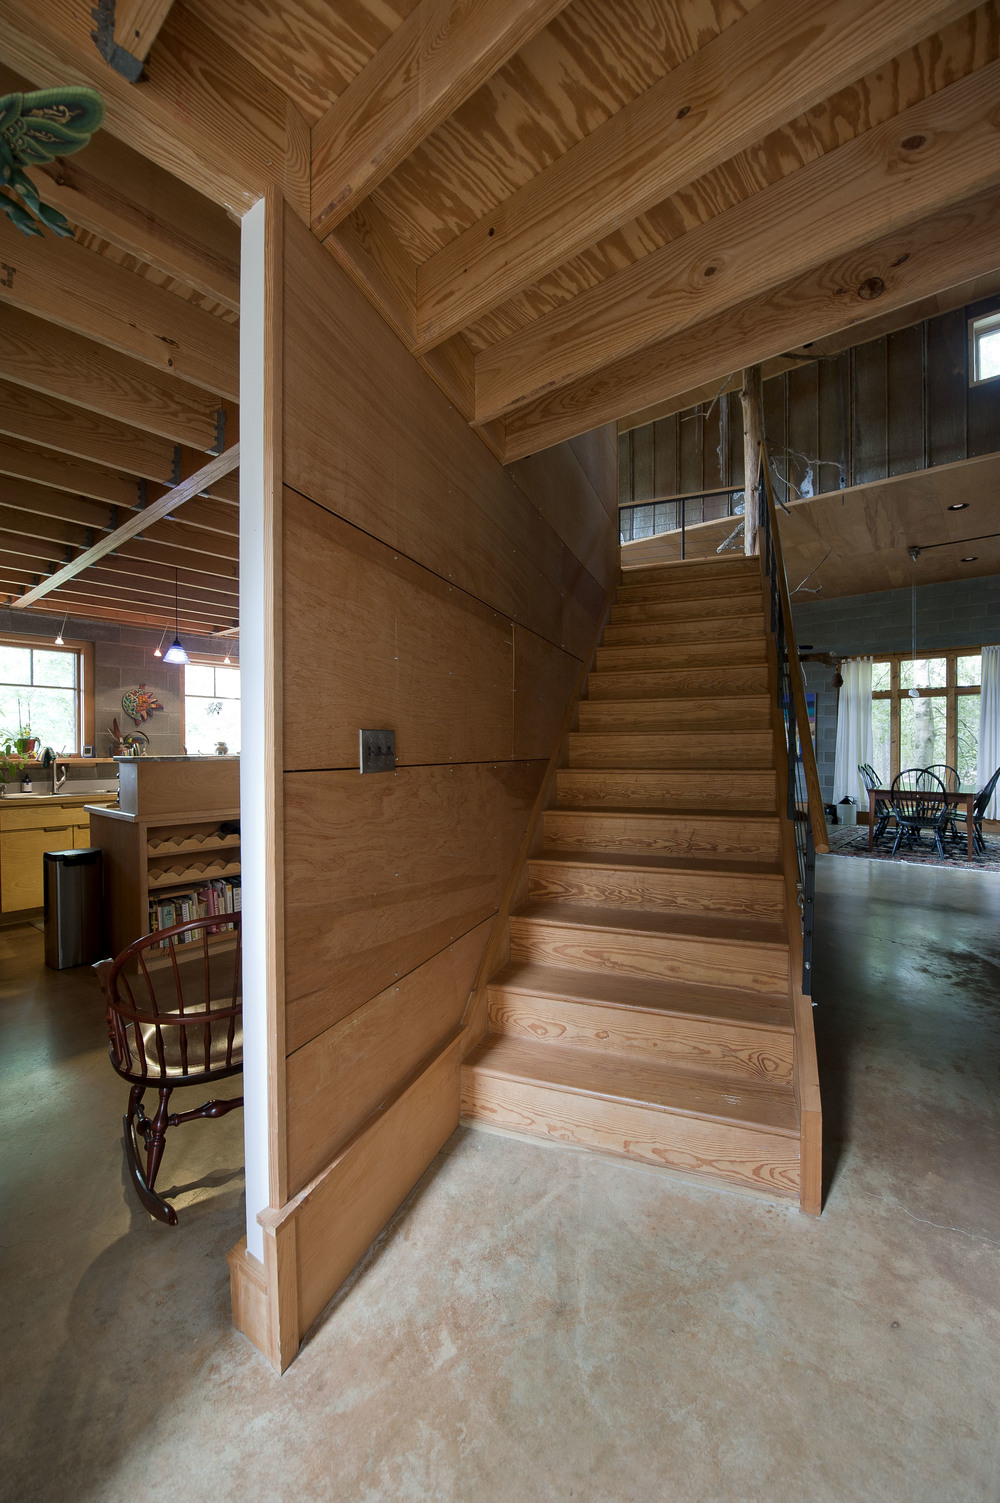 View from entrance encompasses kitchen, staircase, and living/dining area.